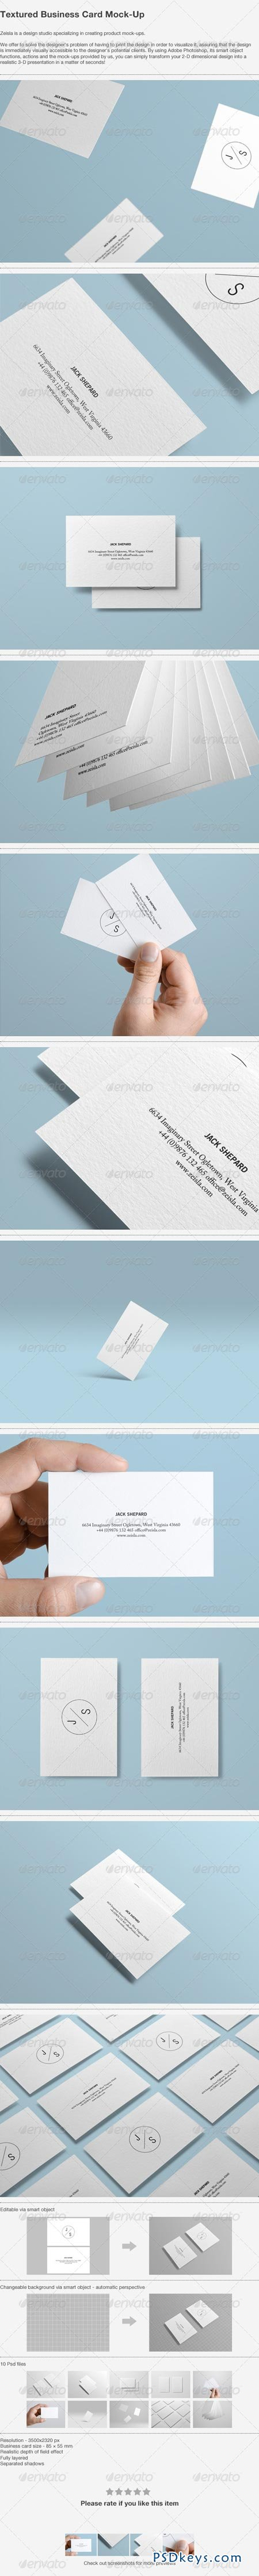 Textured Business Card Mock up Free Download shop